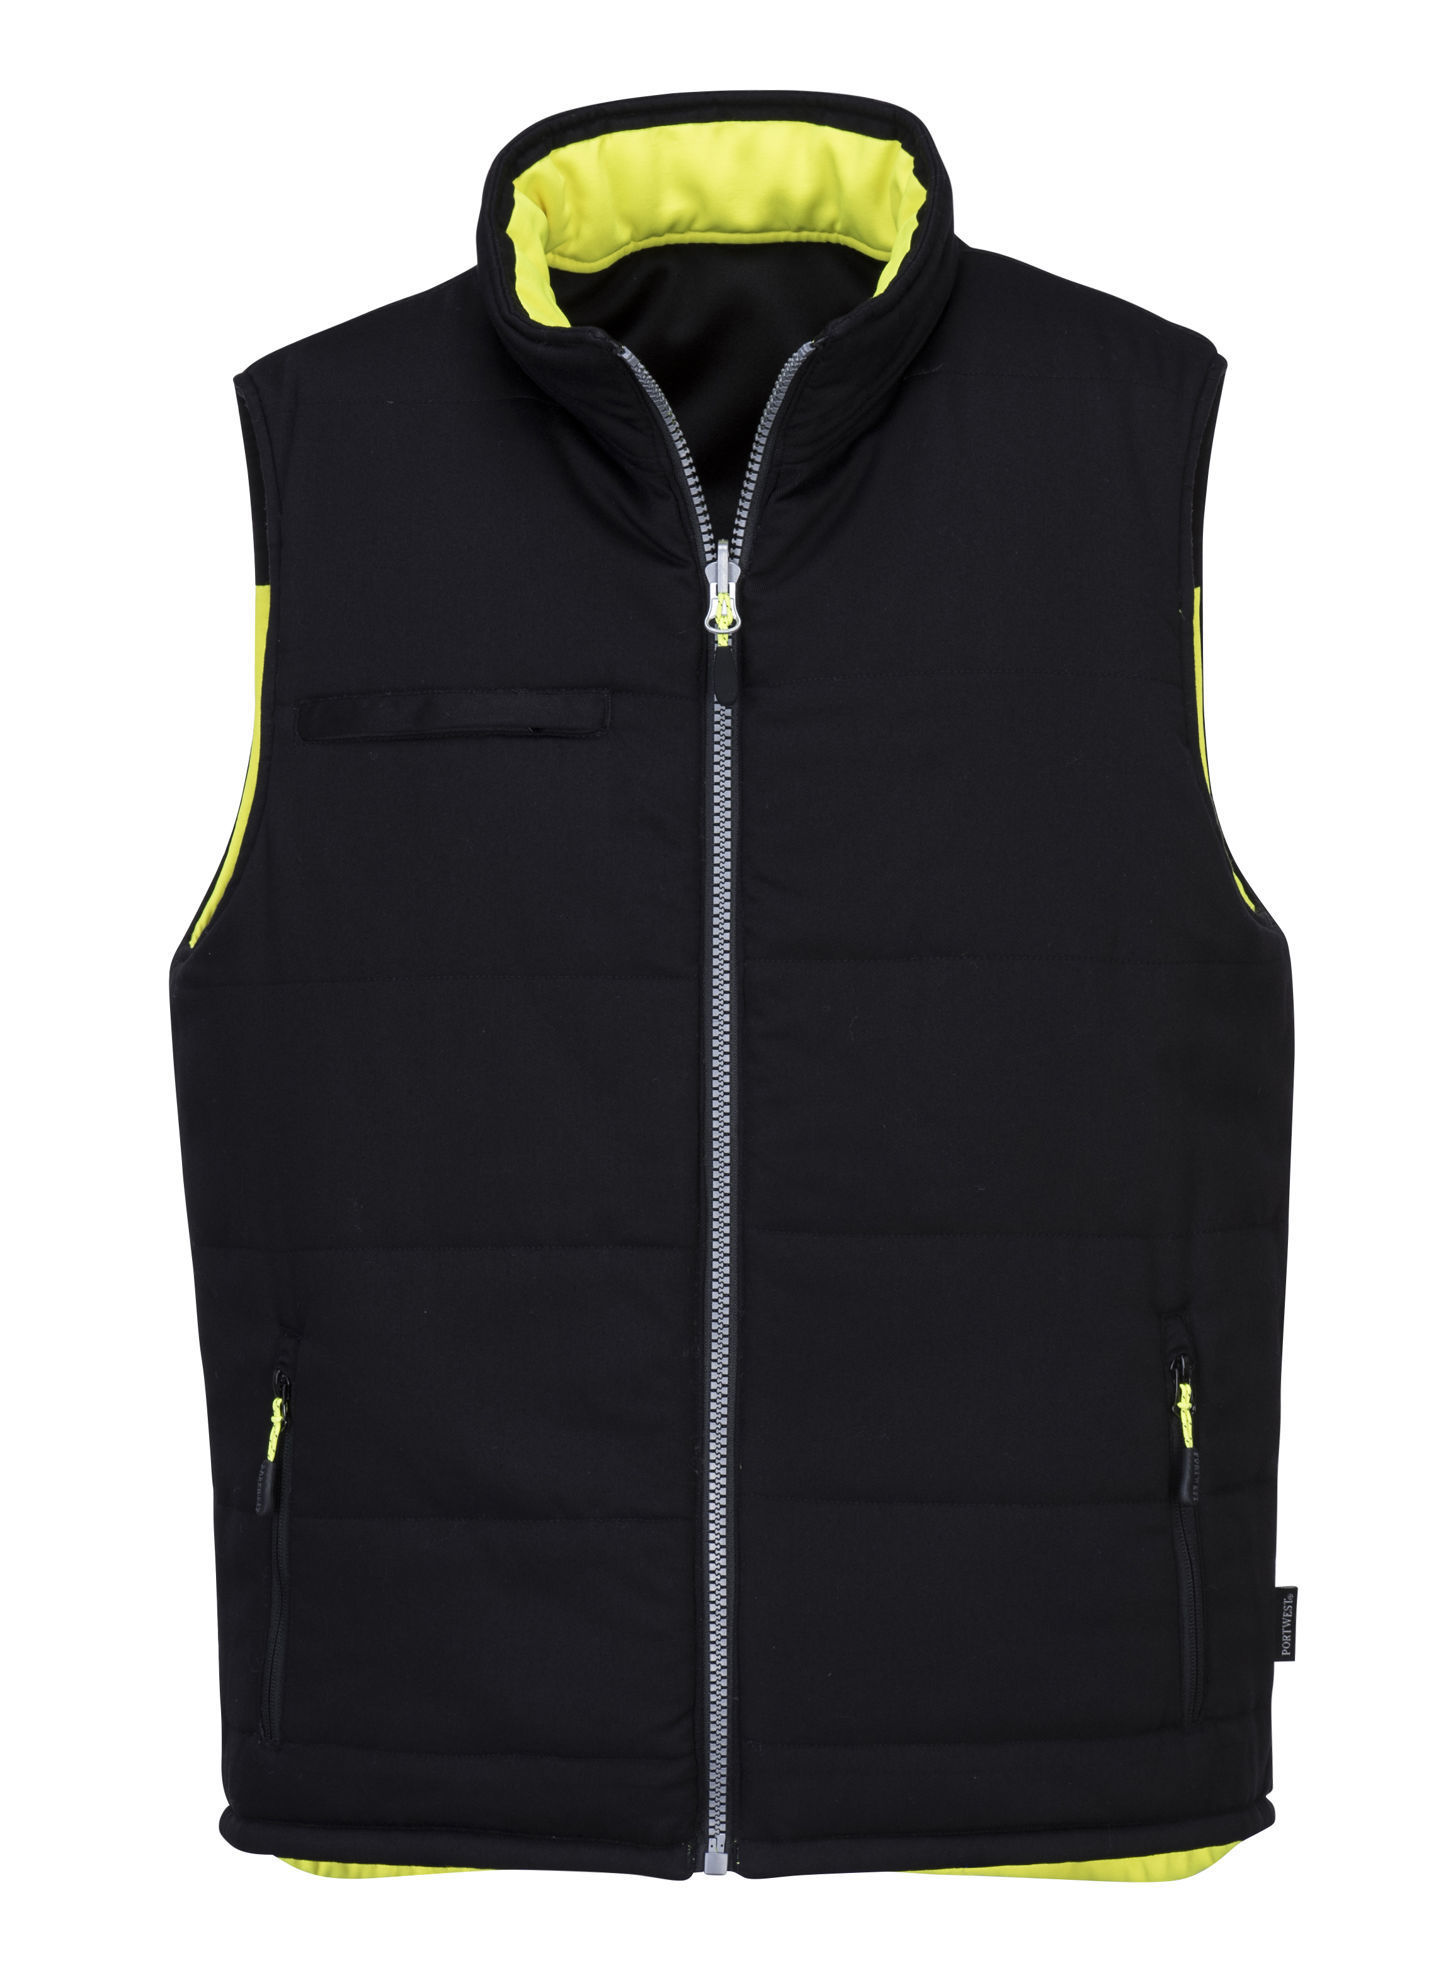 Picture of Portwest PW3 Hi-Vis Reversible Vest Yellow/Black